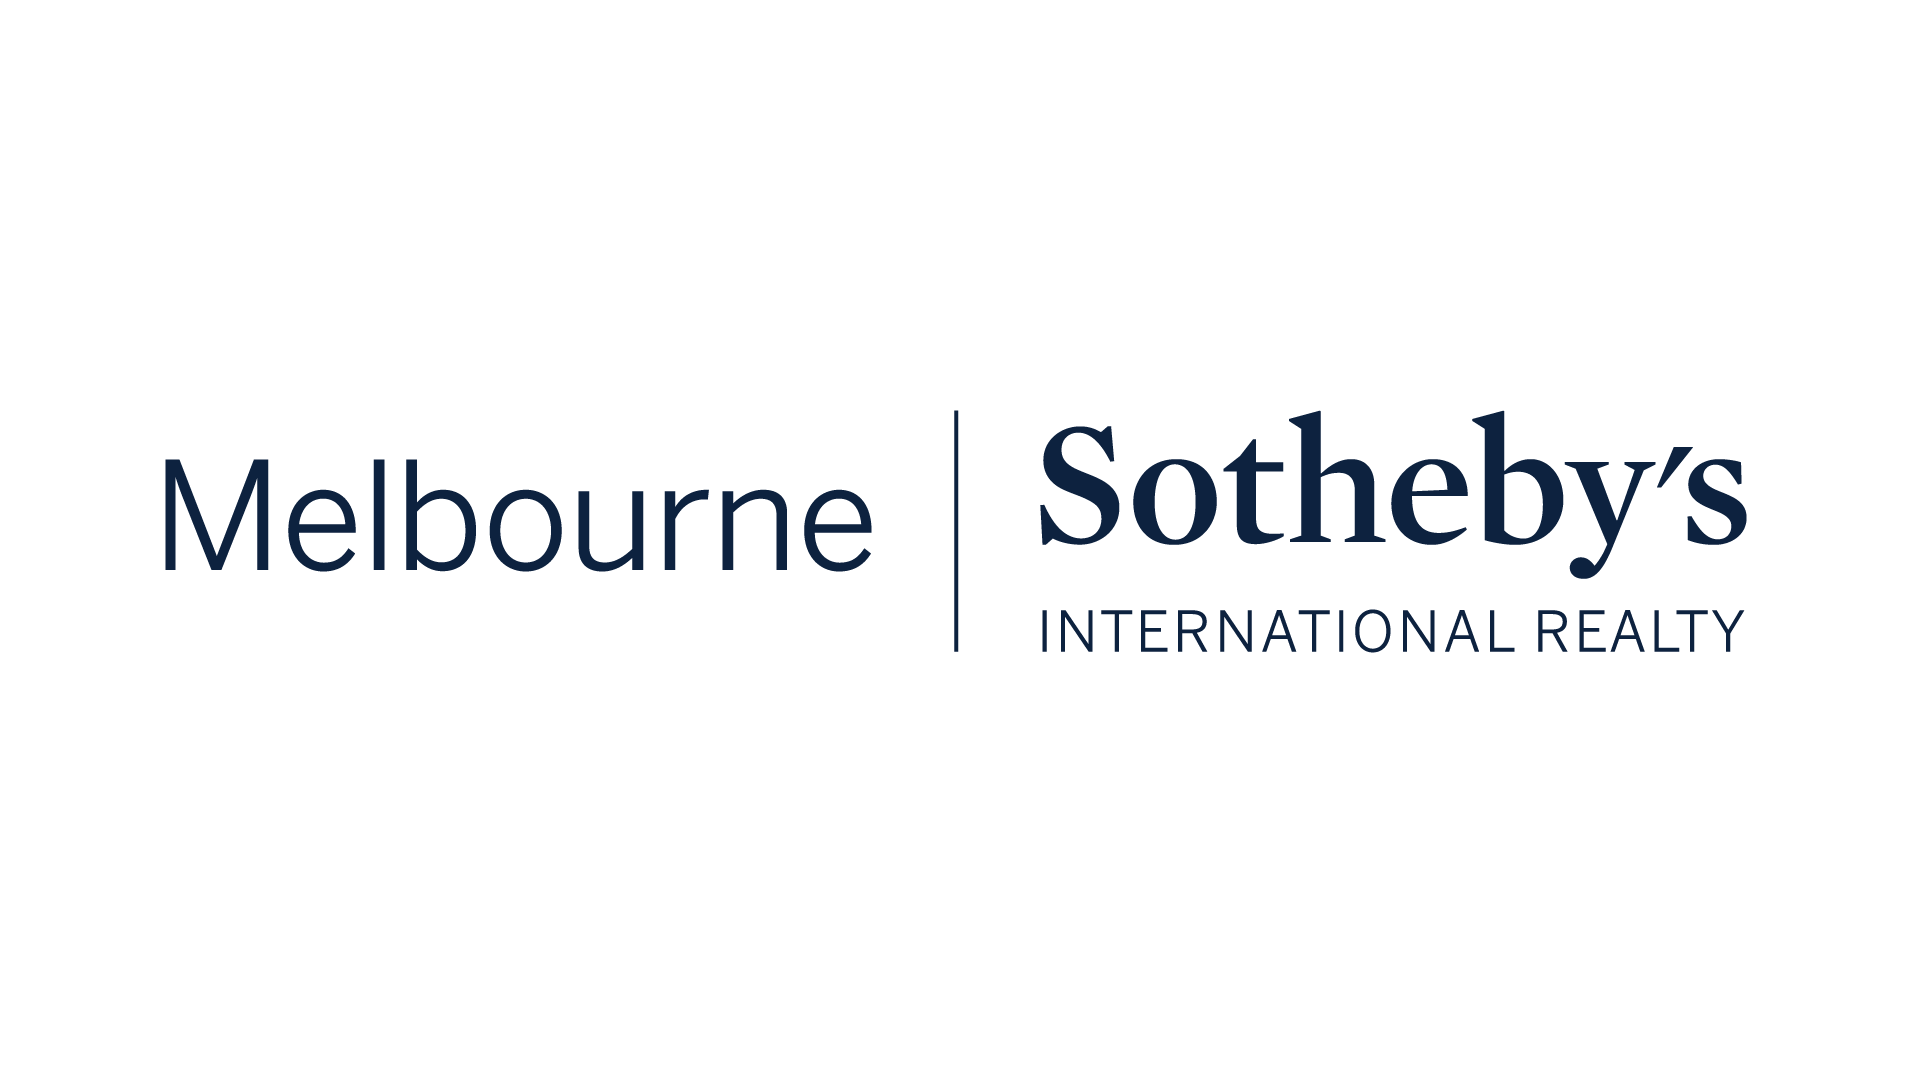 Melbourne Sotheby's International Realty..., Toorak, 3142